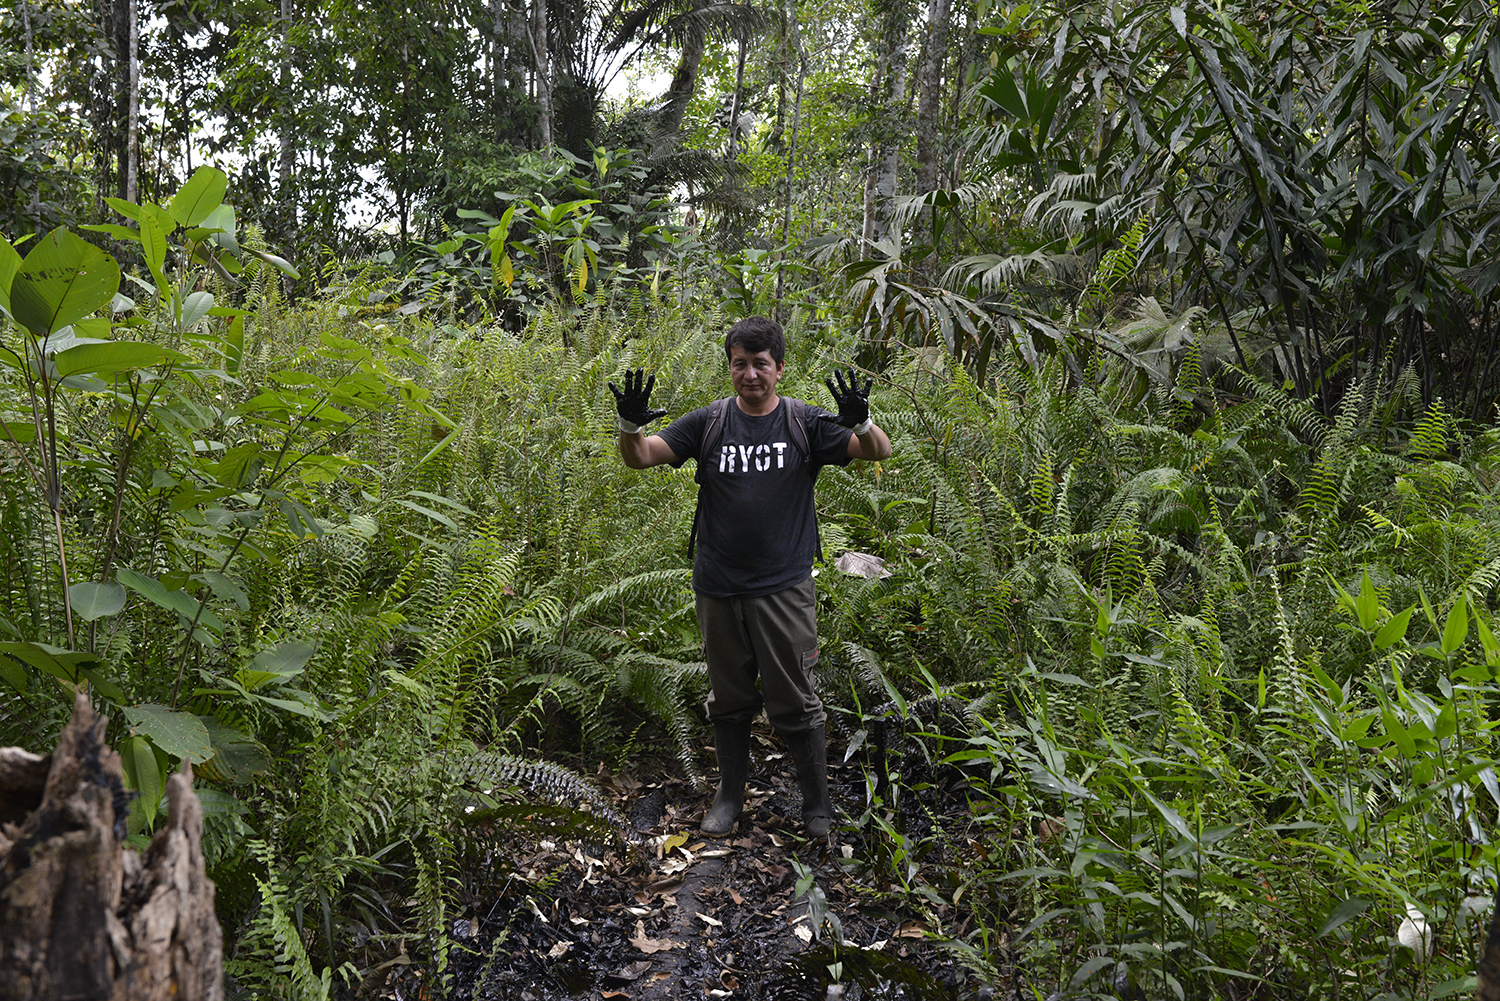 ECUADOR, Lago Agrio. December 2015.  Donald Moncayo, activist and ally of Amazon Watch, stand on an oil 'pool' left by Texaco in 1992 (now Chevron). Donald, a member of the affected communities, dedicated his life to showing the world the environmental disaster left by Texaco.